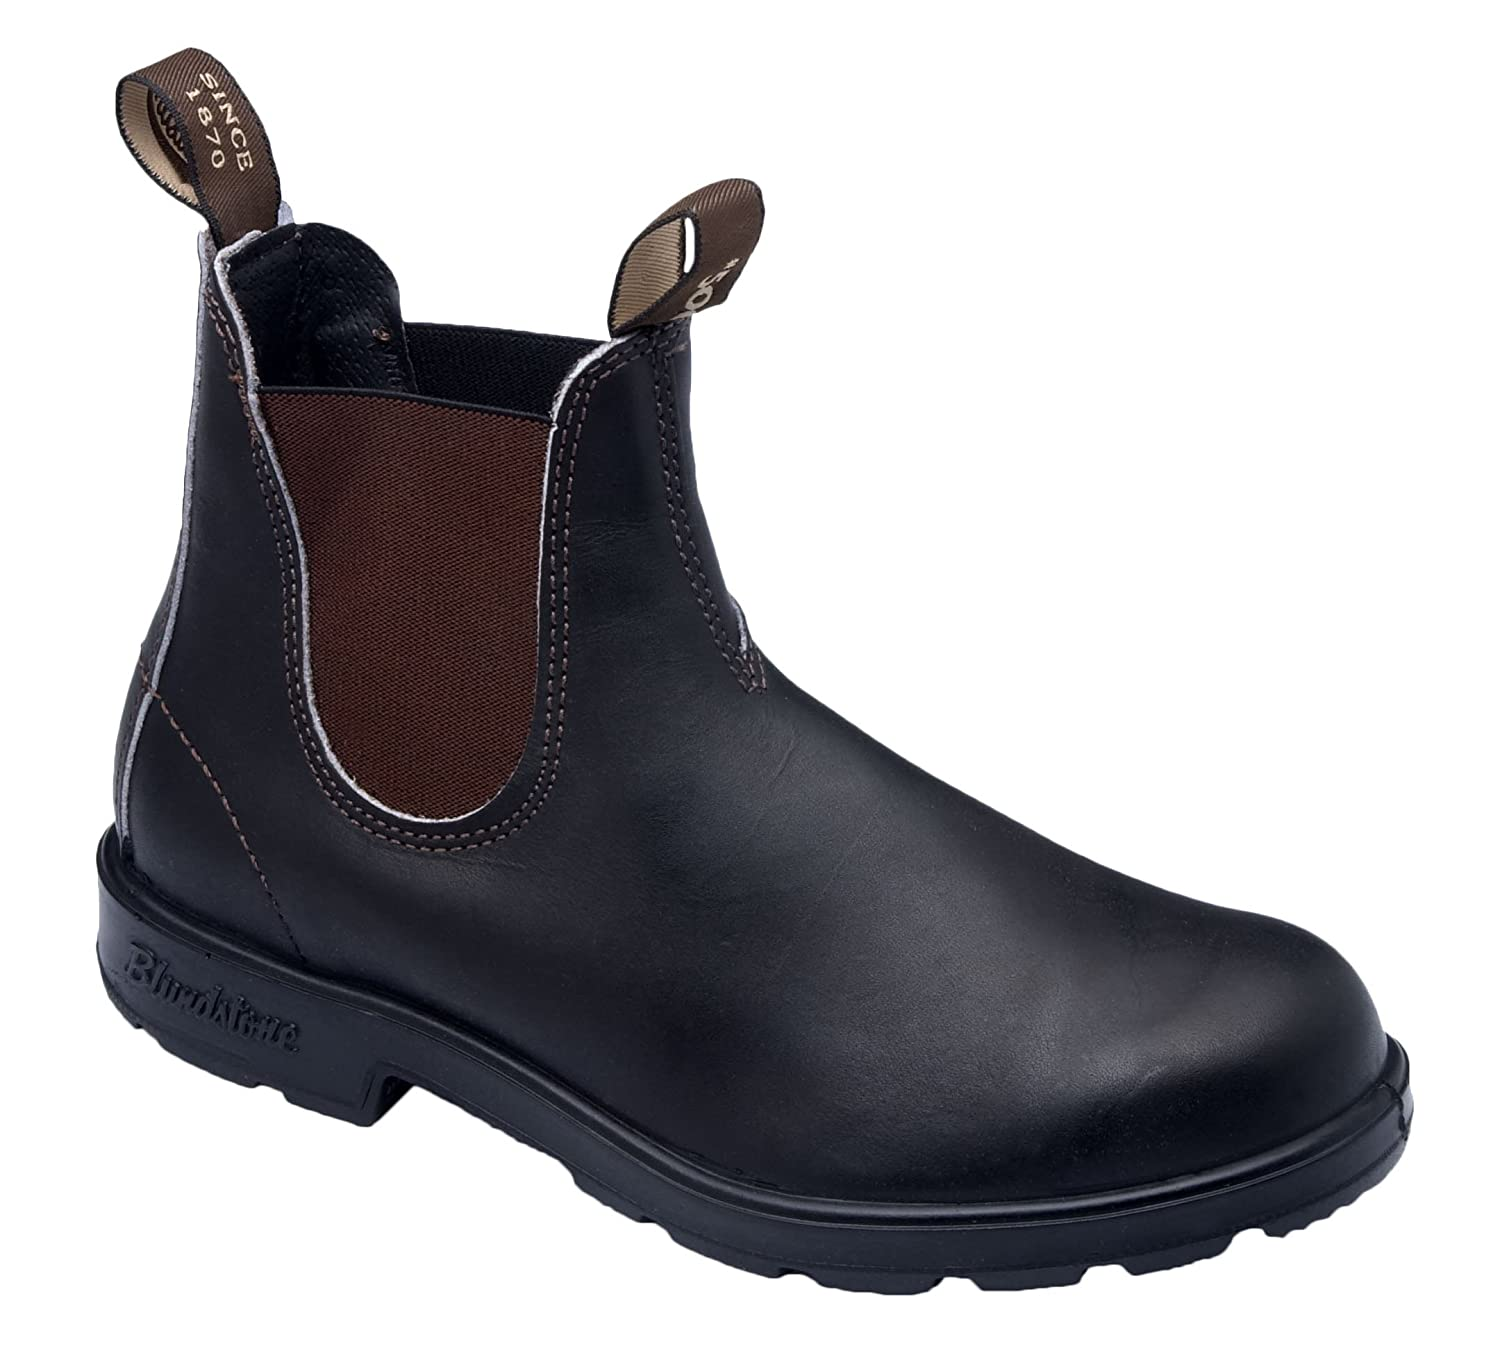 Blundstone Classic, Escarpines Unisex Adulto, Marrón (Stout Brown),48 EU|Marrón (Stout Brown)